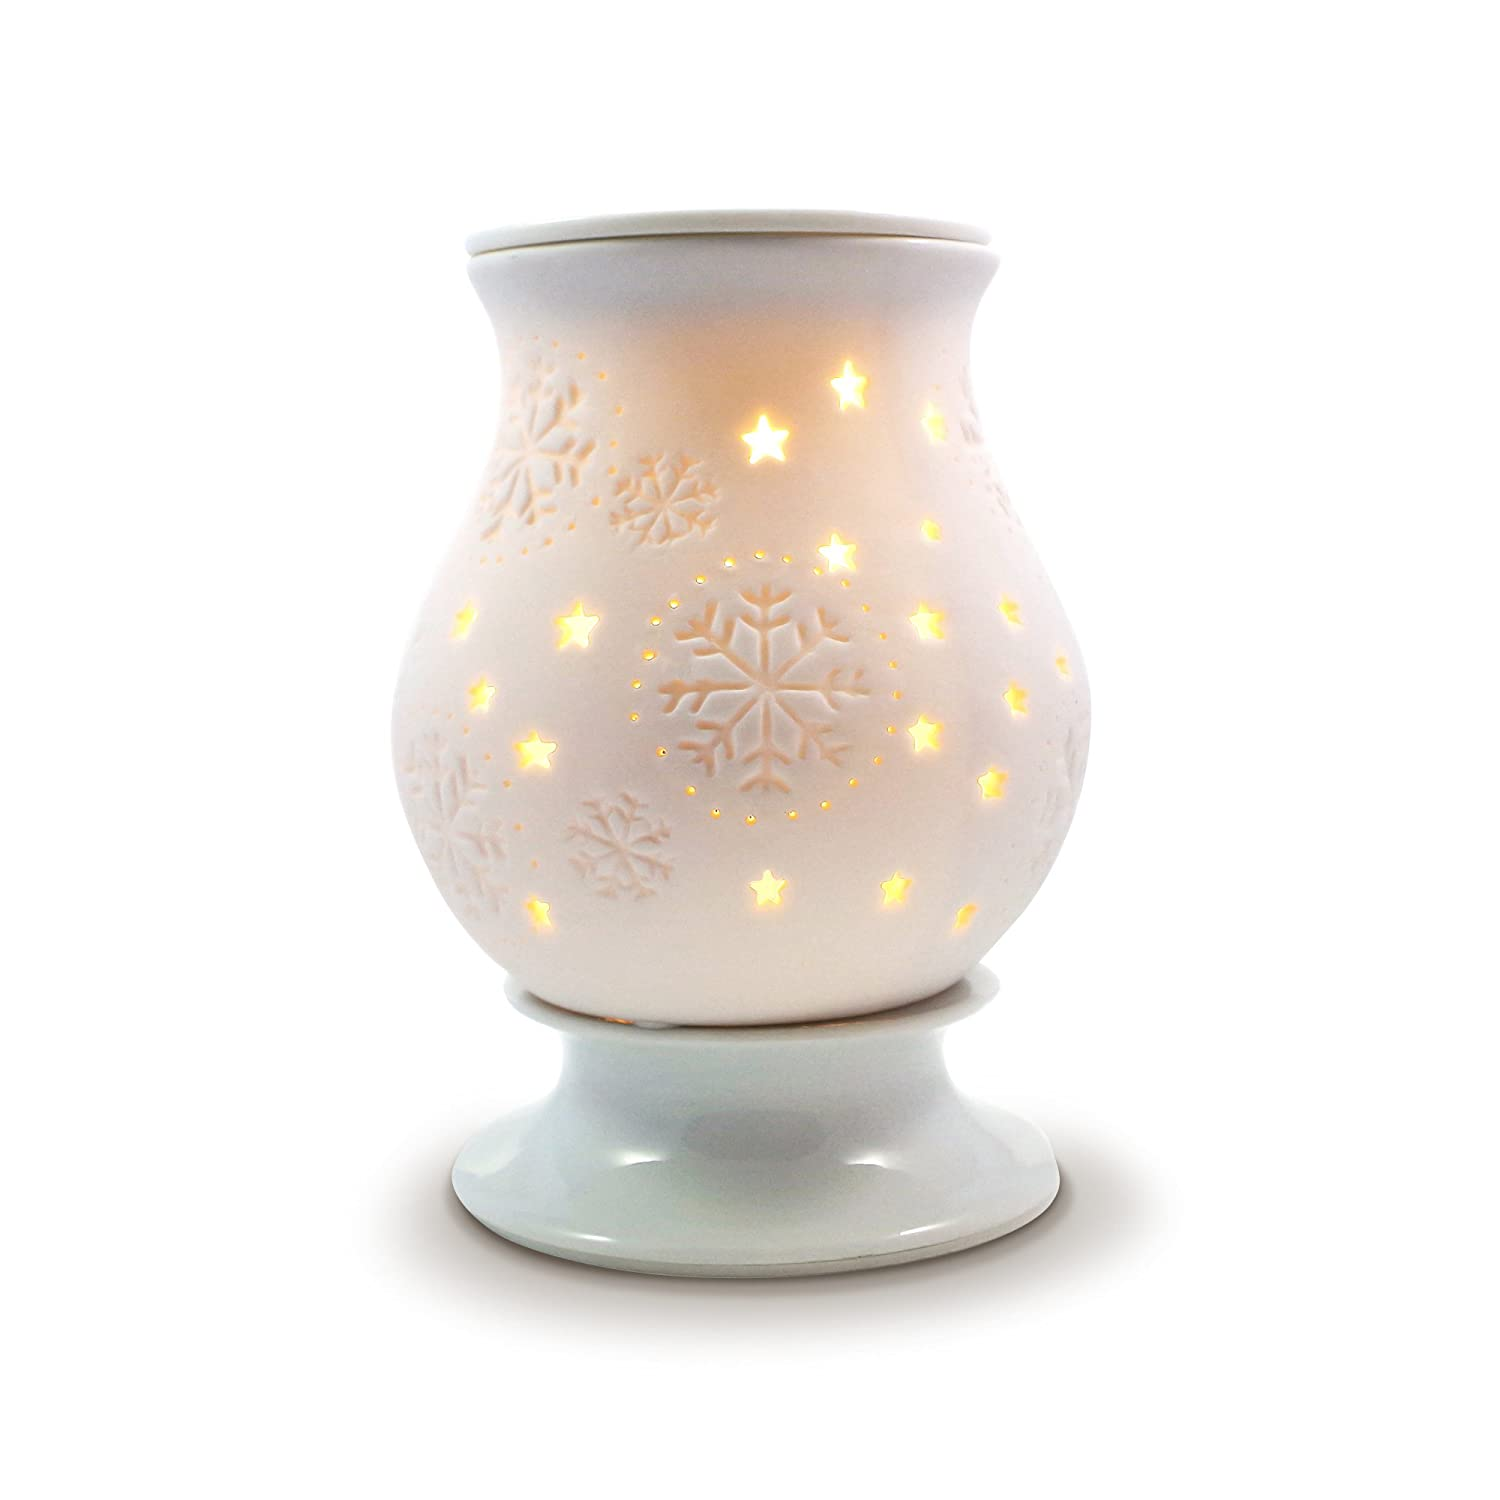 Electric wax burner - Snowflake electric wax melt warmer (wax tart burner) with light and dimmer Owlchemy Ltd snowflake (no scent)